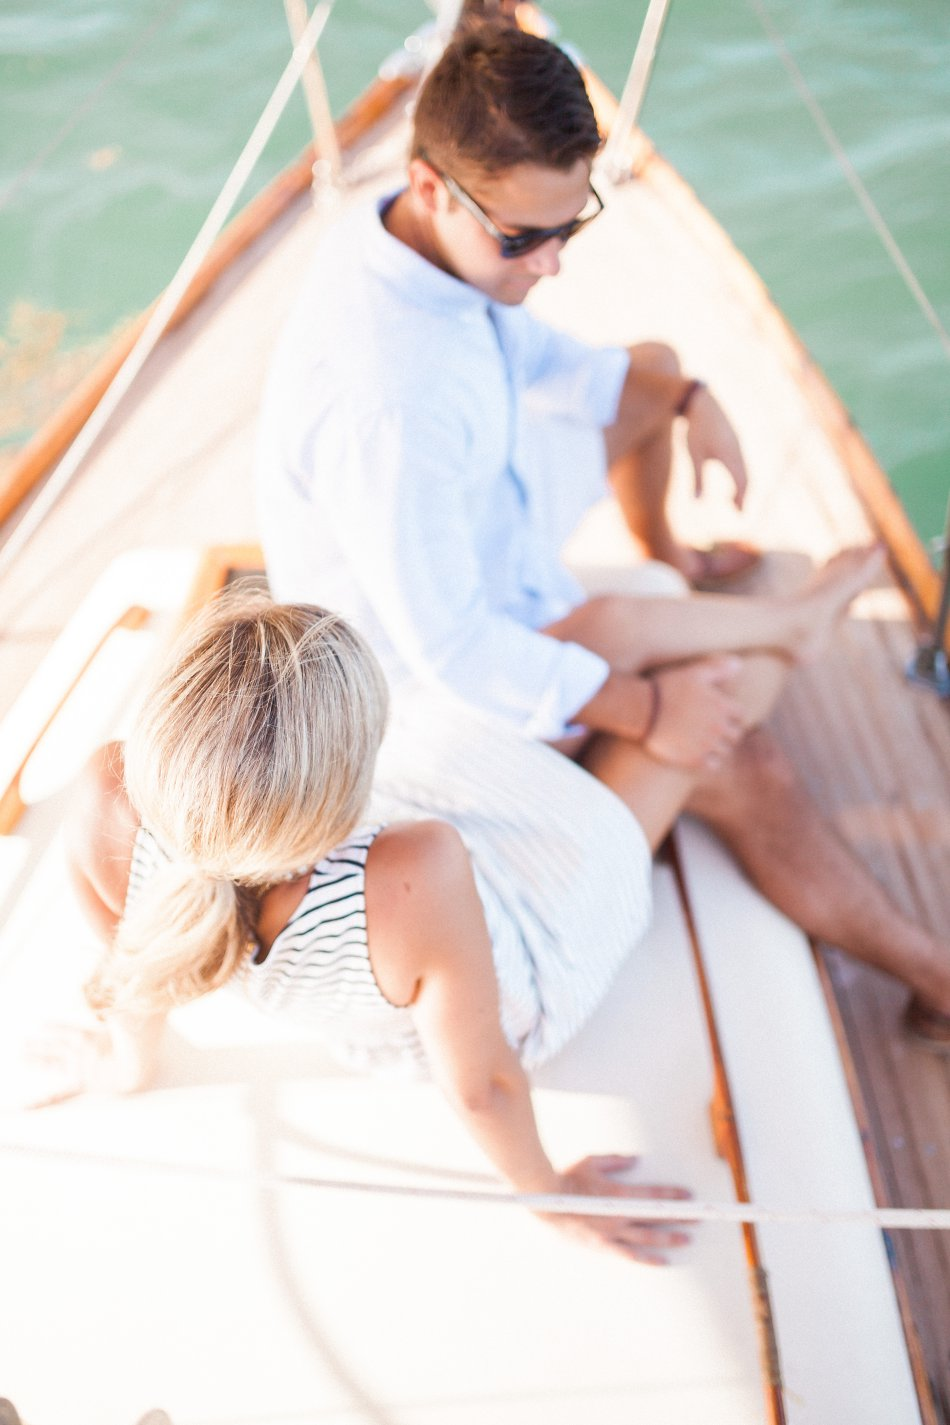 naples-luxury-sailing-engagement-photography-nautical-sailboat-engagement_1043.jpg